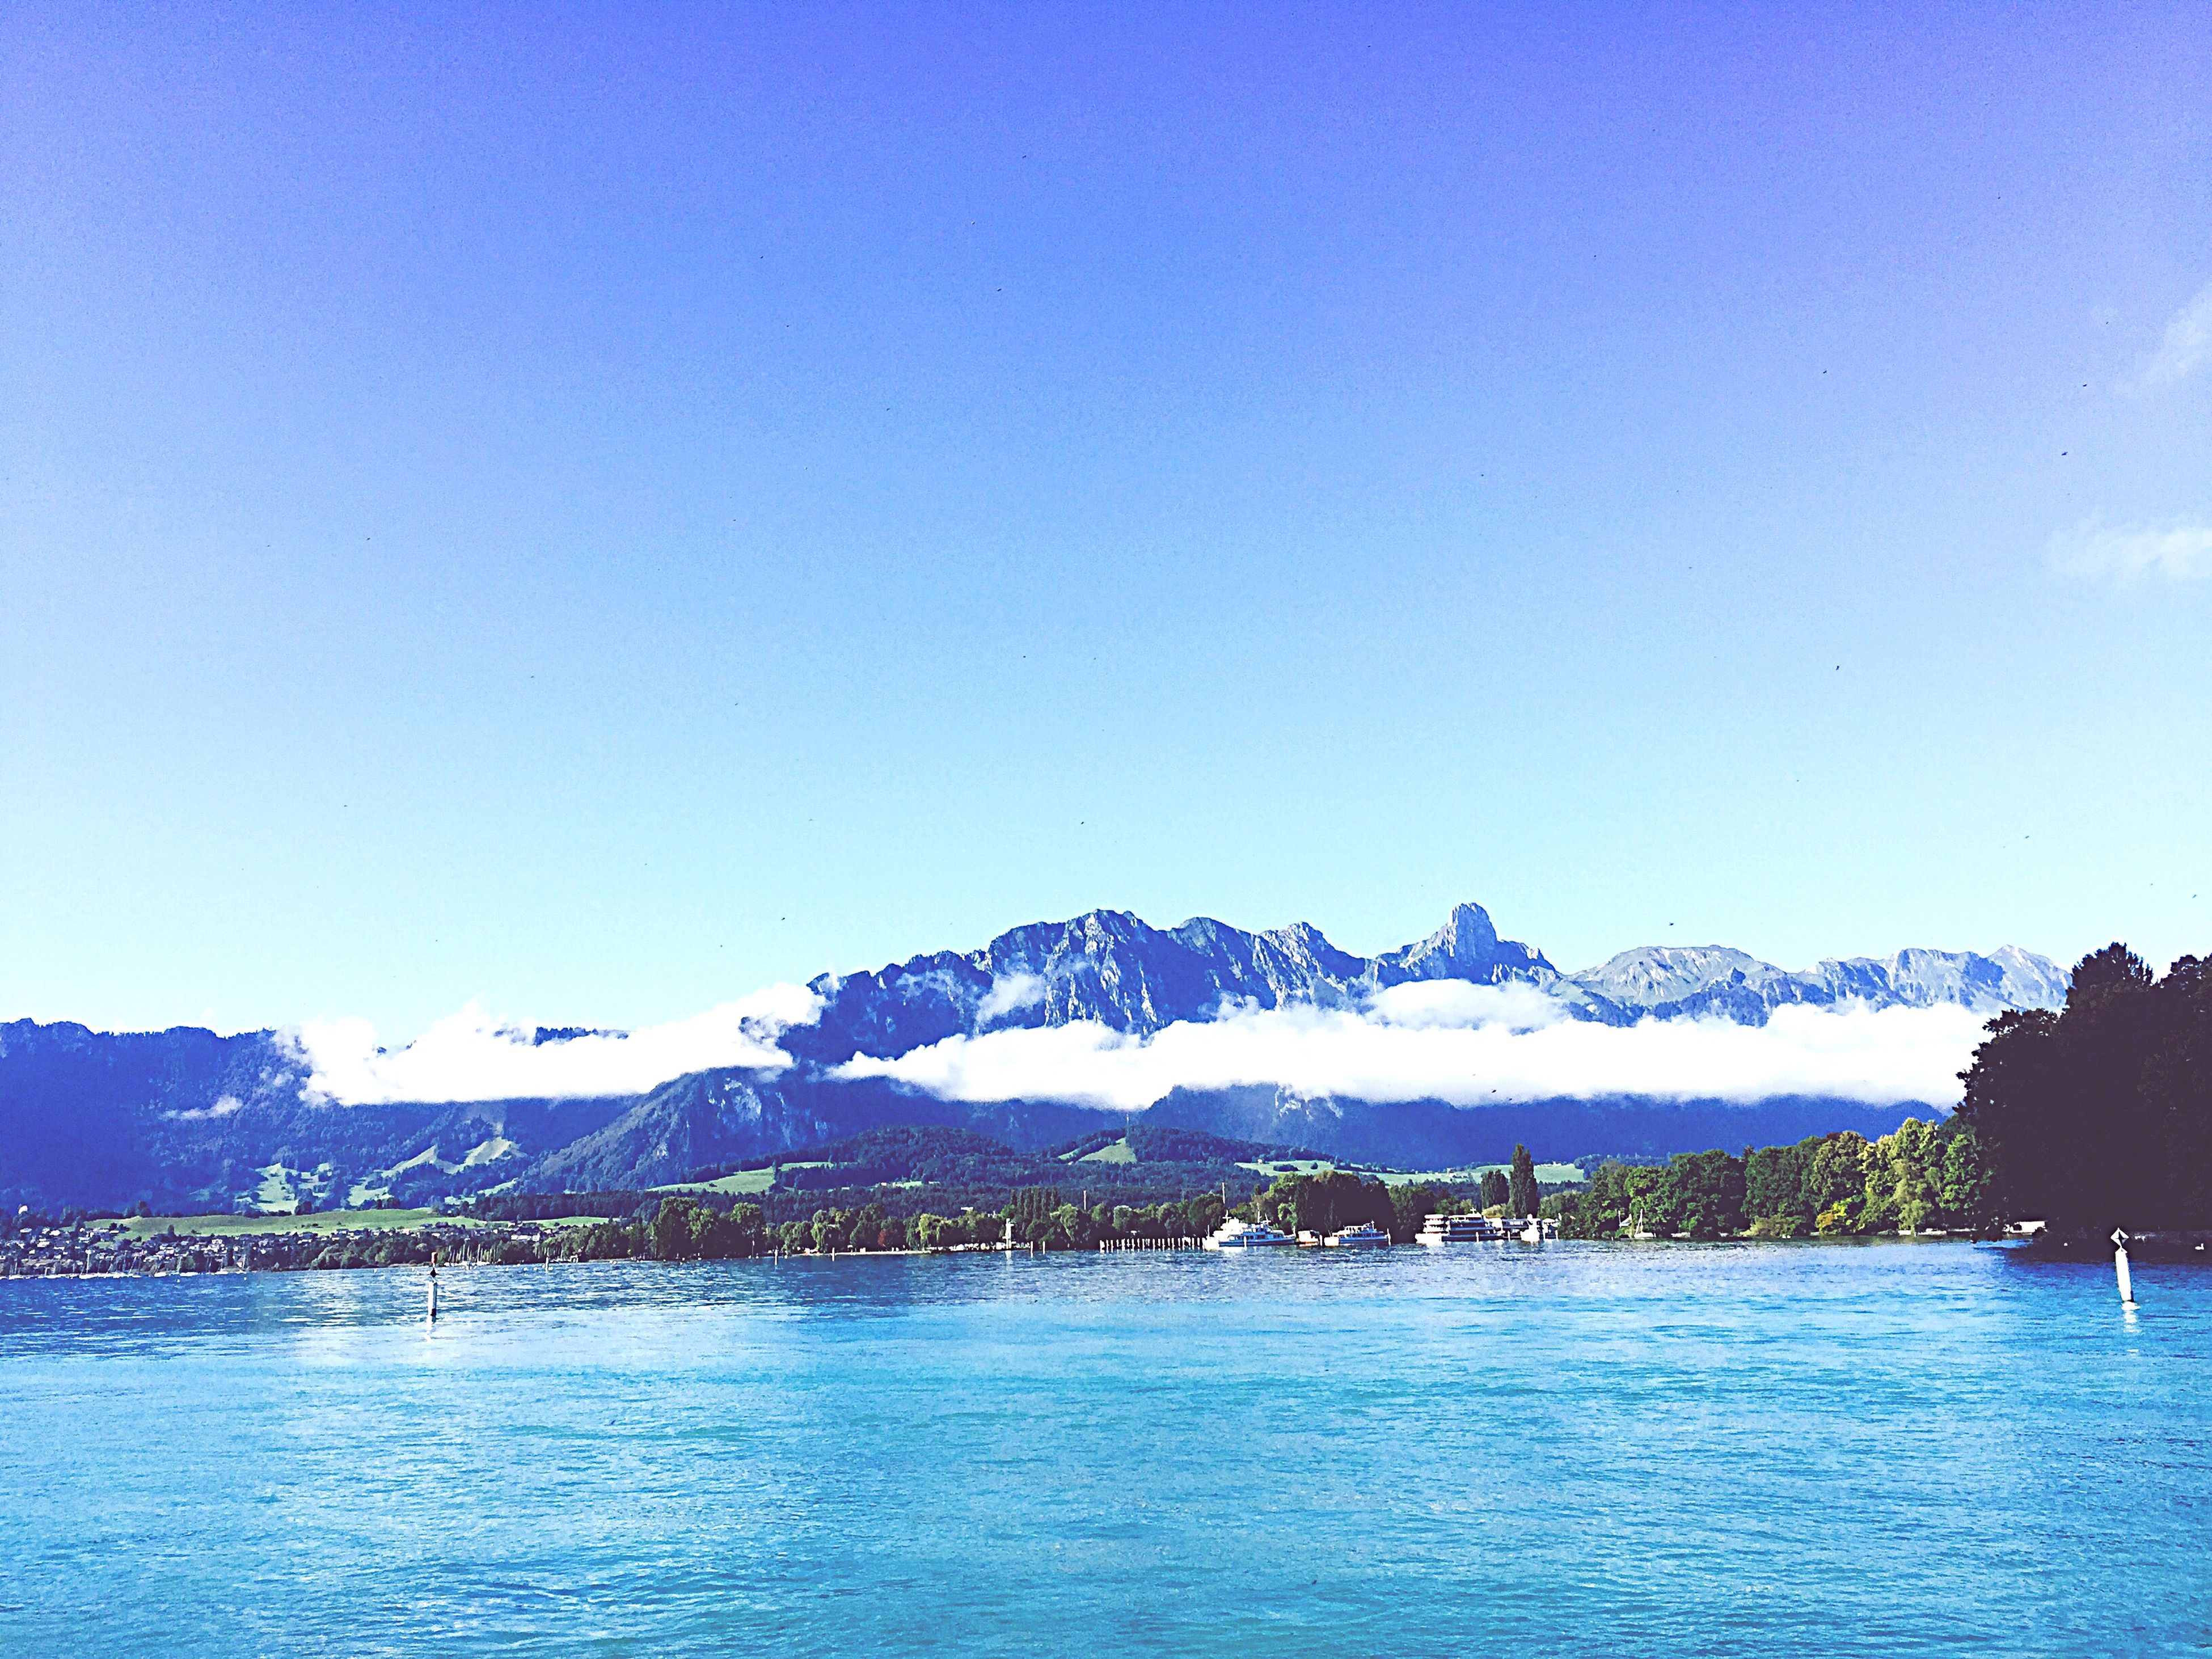 clear sky, mountain, blue, tranquil scene, water, copy space, scenics, tranquility, waterfront, mountain range, beauty in nature, nature, day, non-urban scene, calm, outdoors, sea, water surface, no people, majestic, solitude, remote, dreamlike, vibrant color, vacations